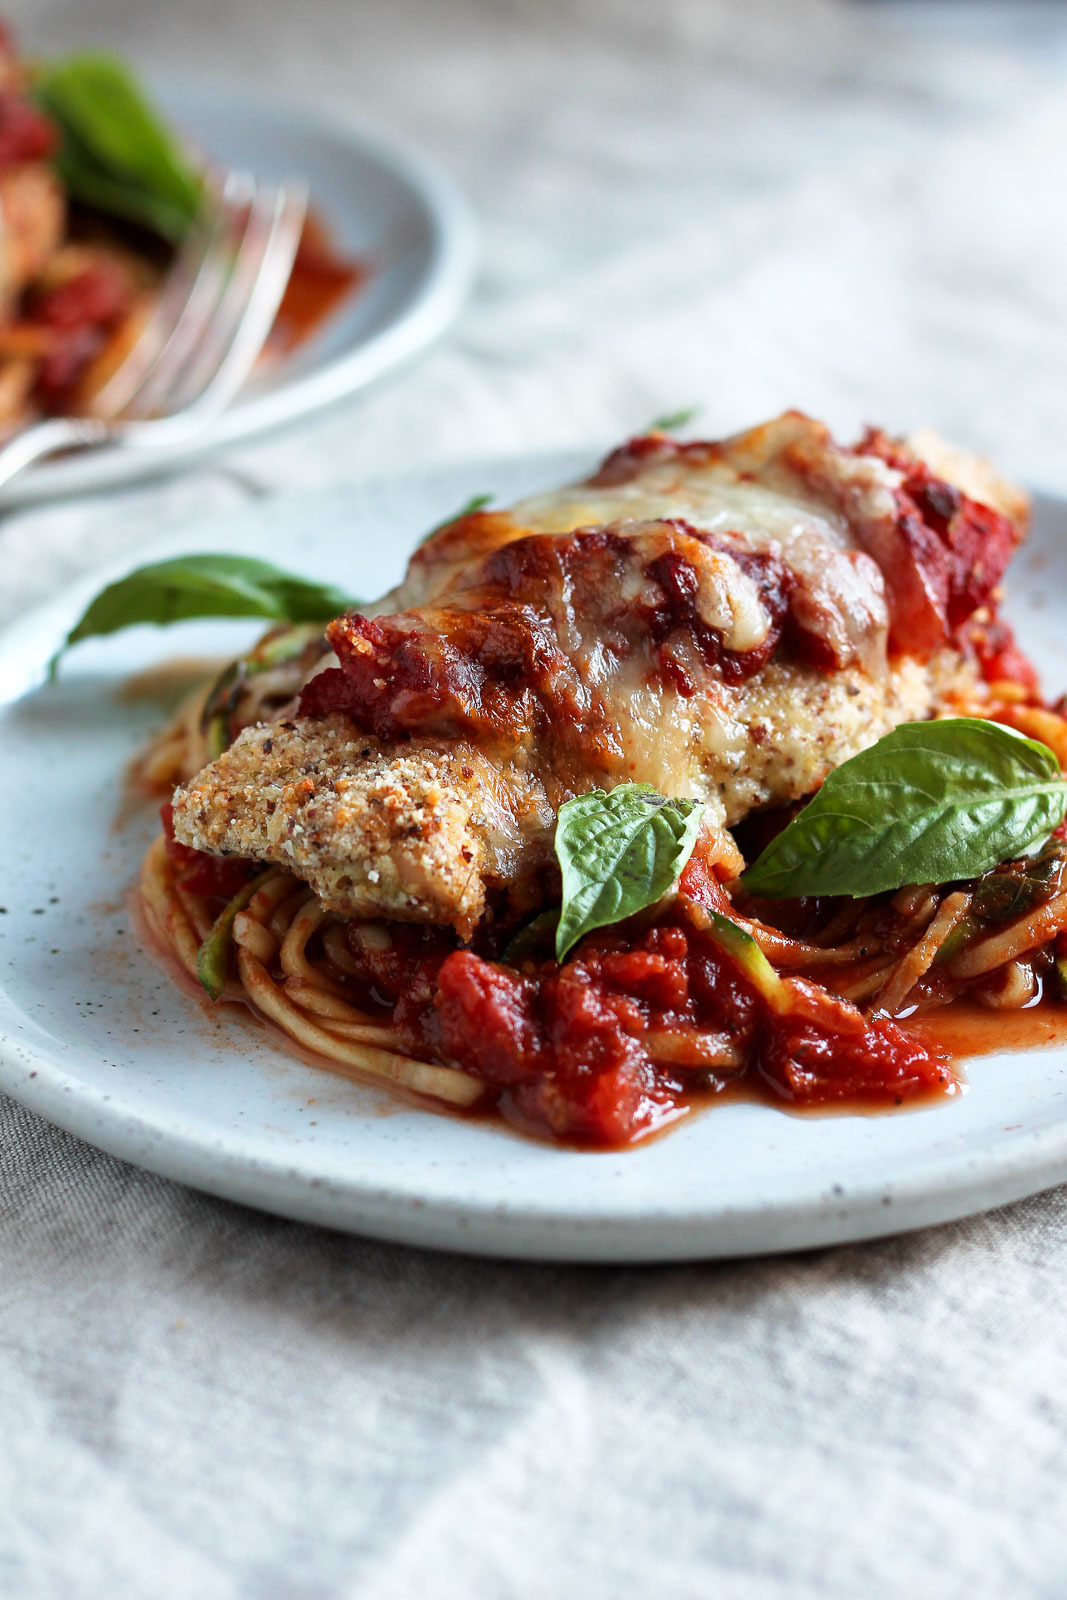 Healthy Baked Chicken Parmesan with Zucchini Noodles